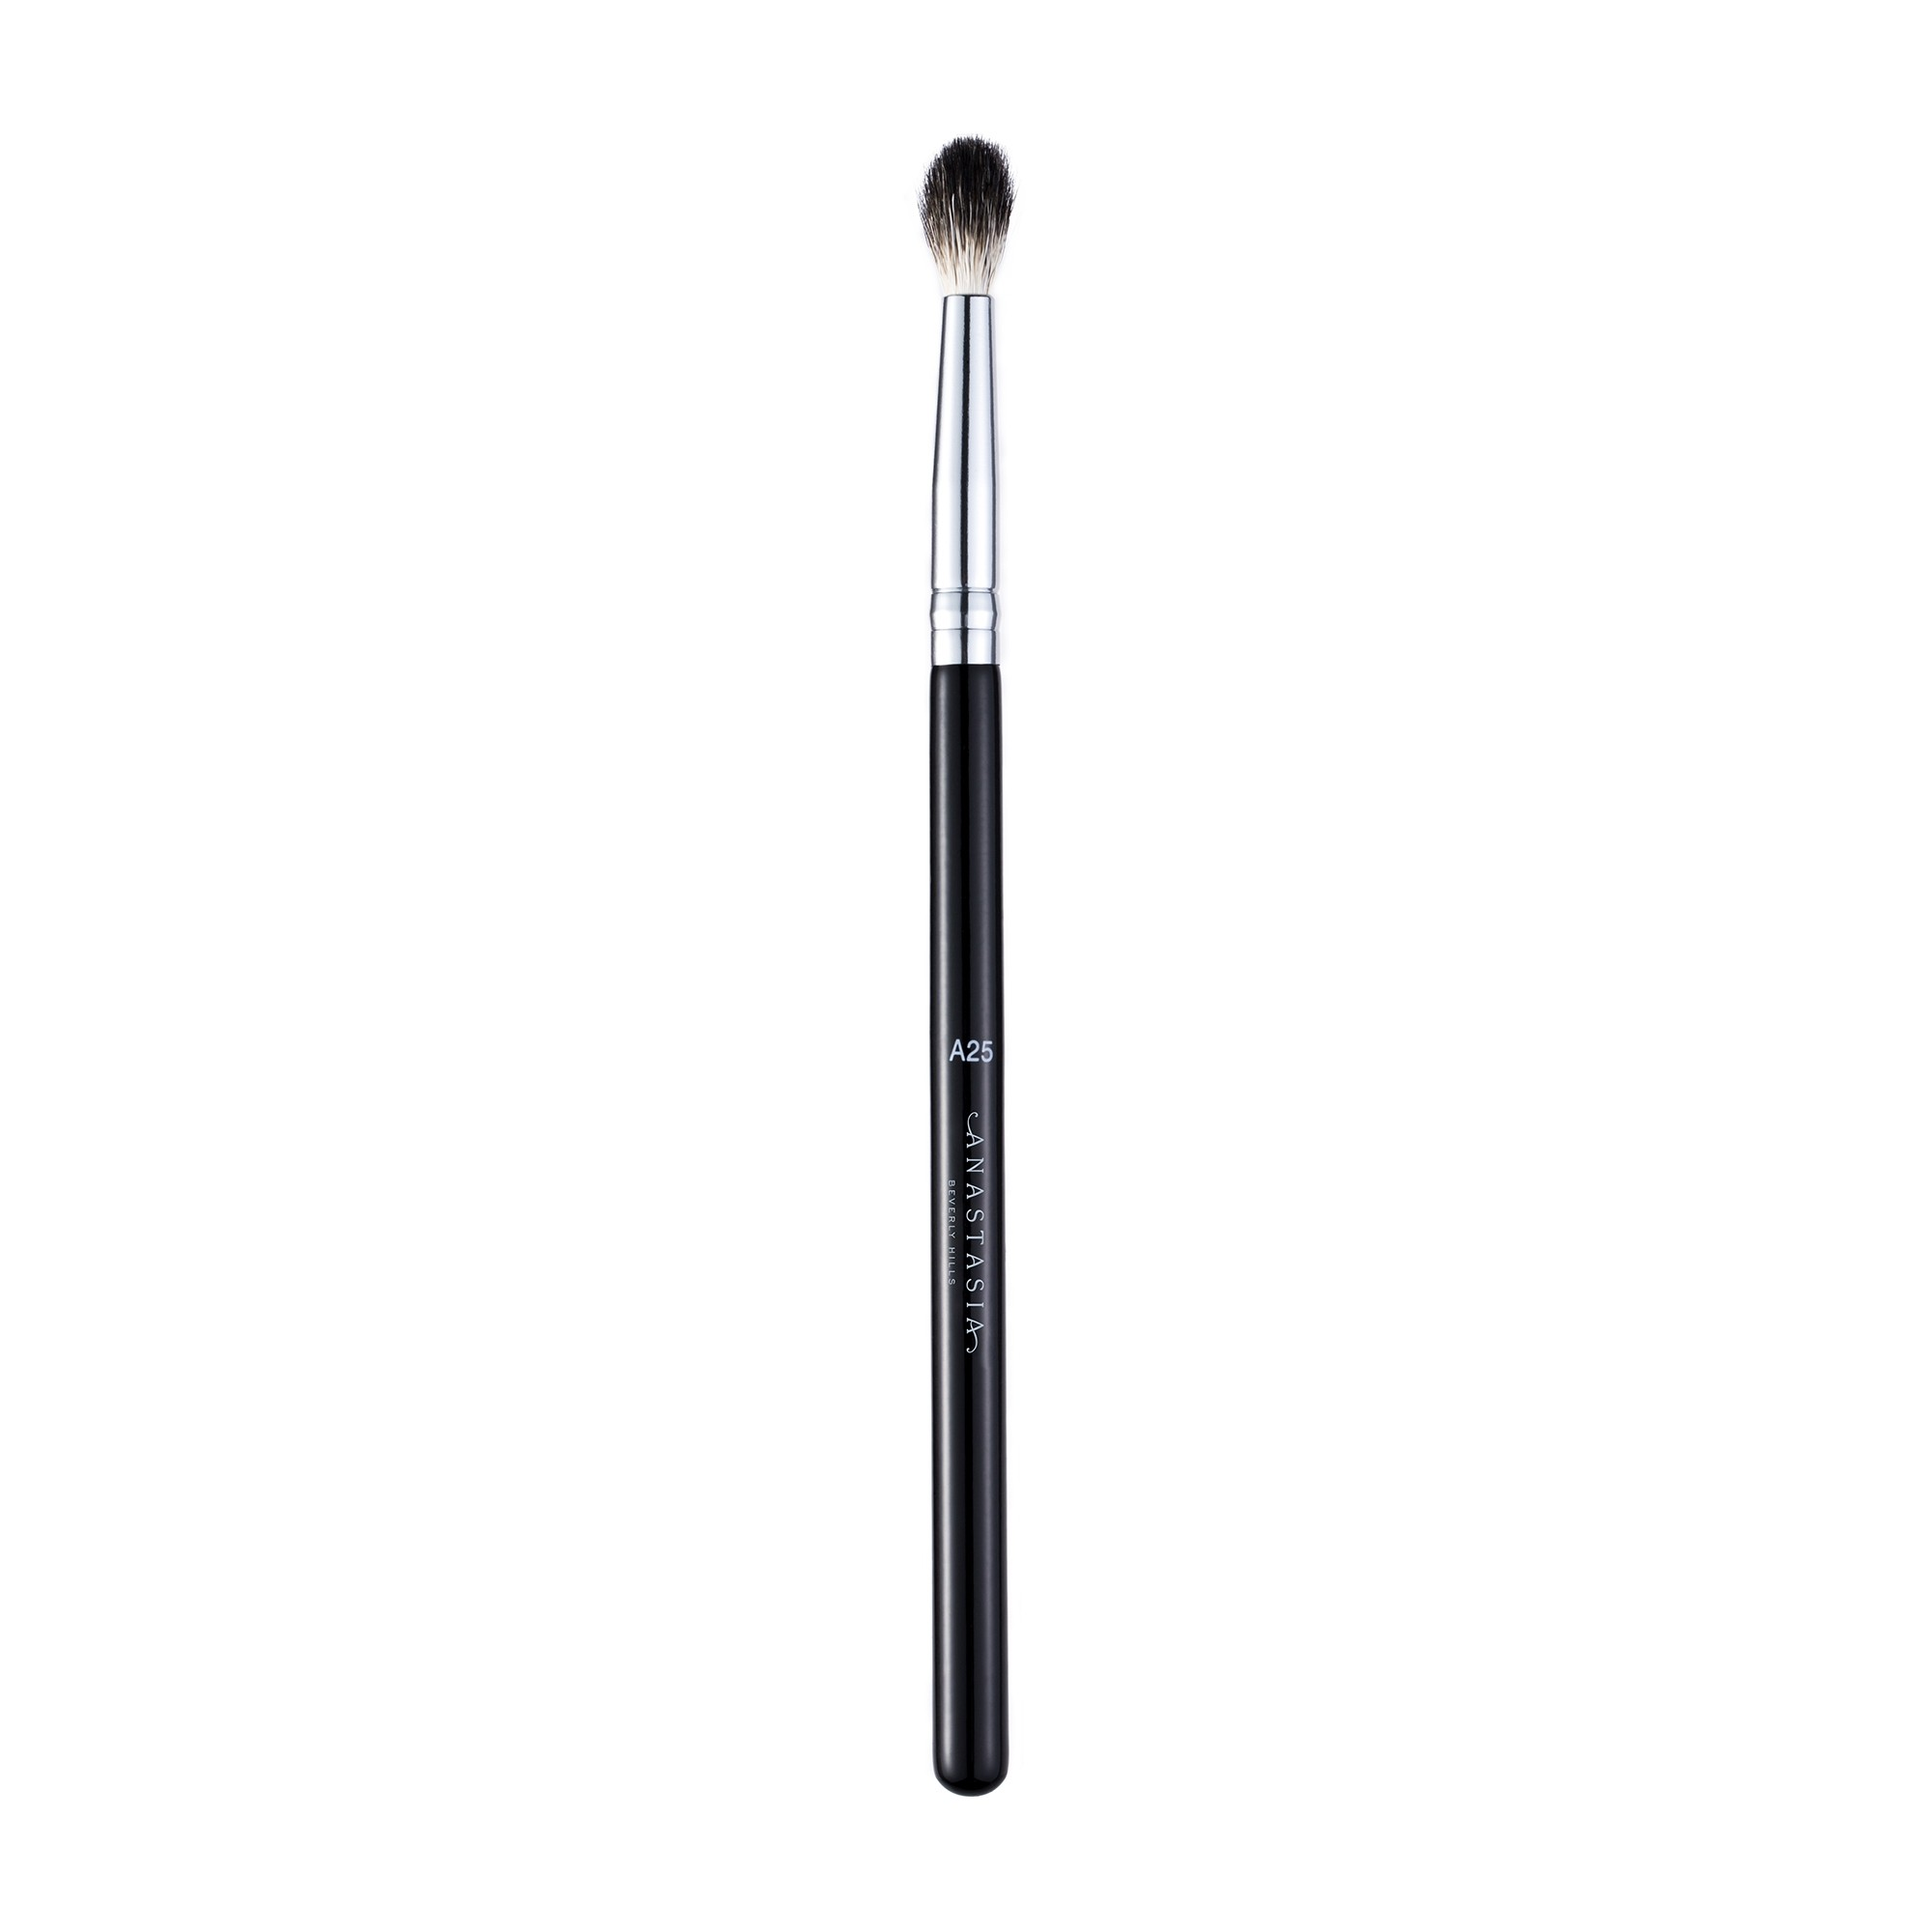 Anastasia Beverly Hills Pro Brush A25 Tapered Blending Brush